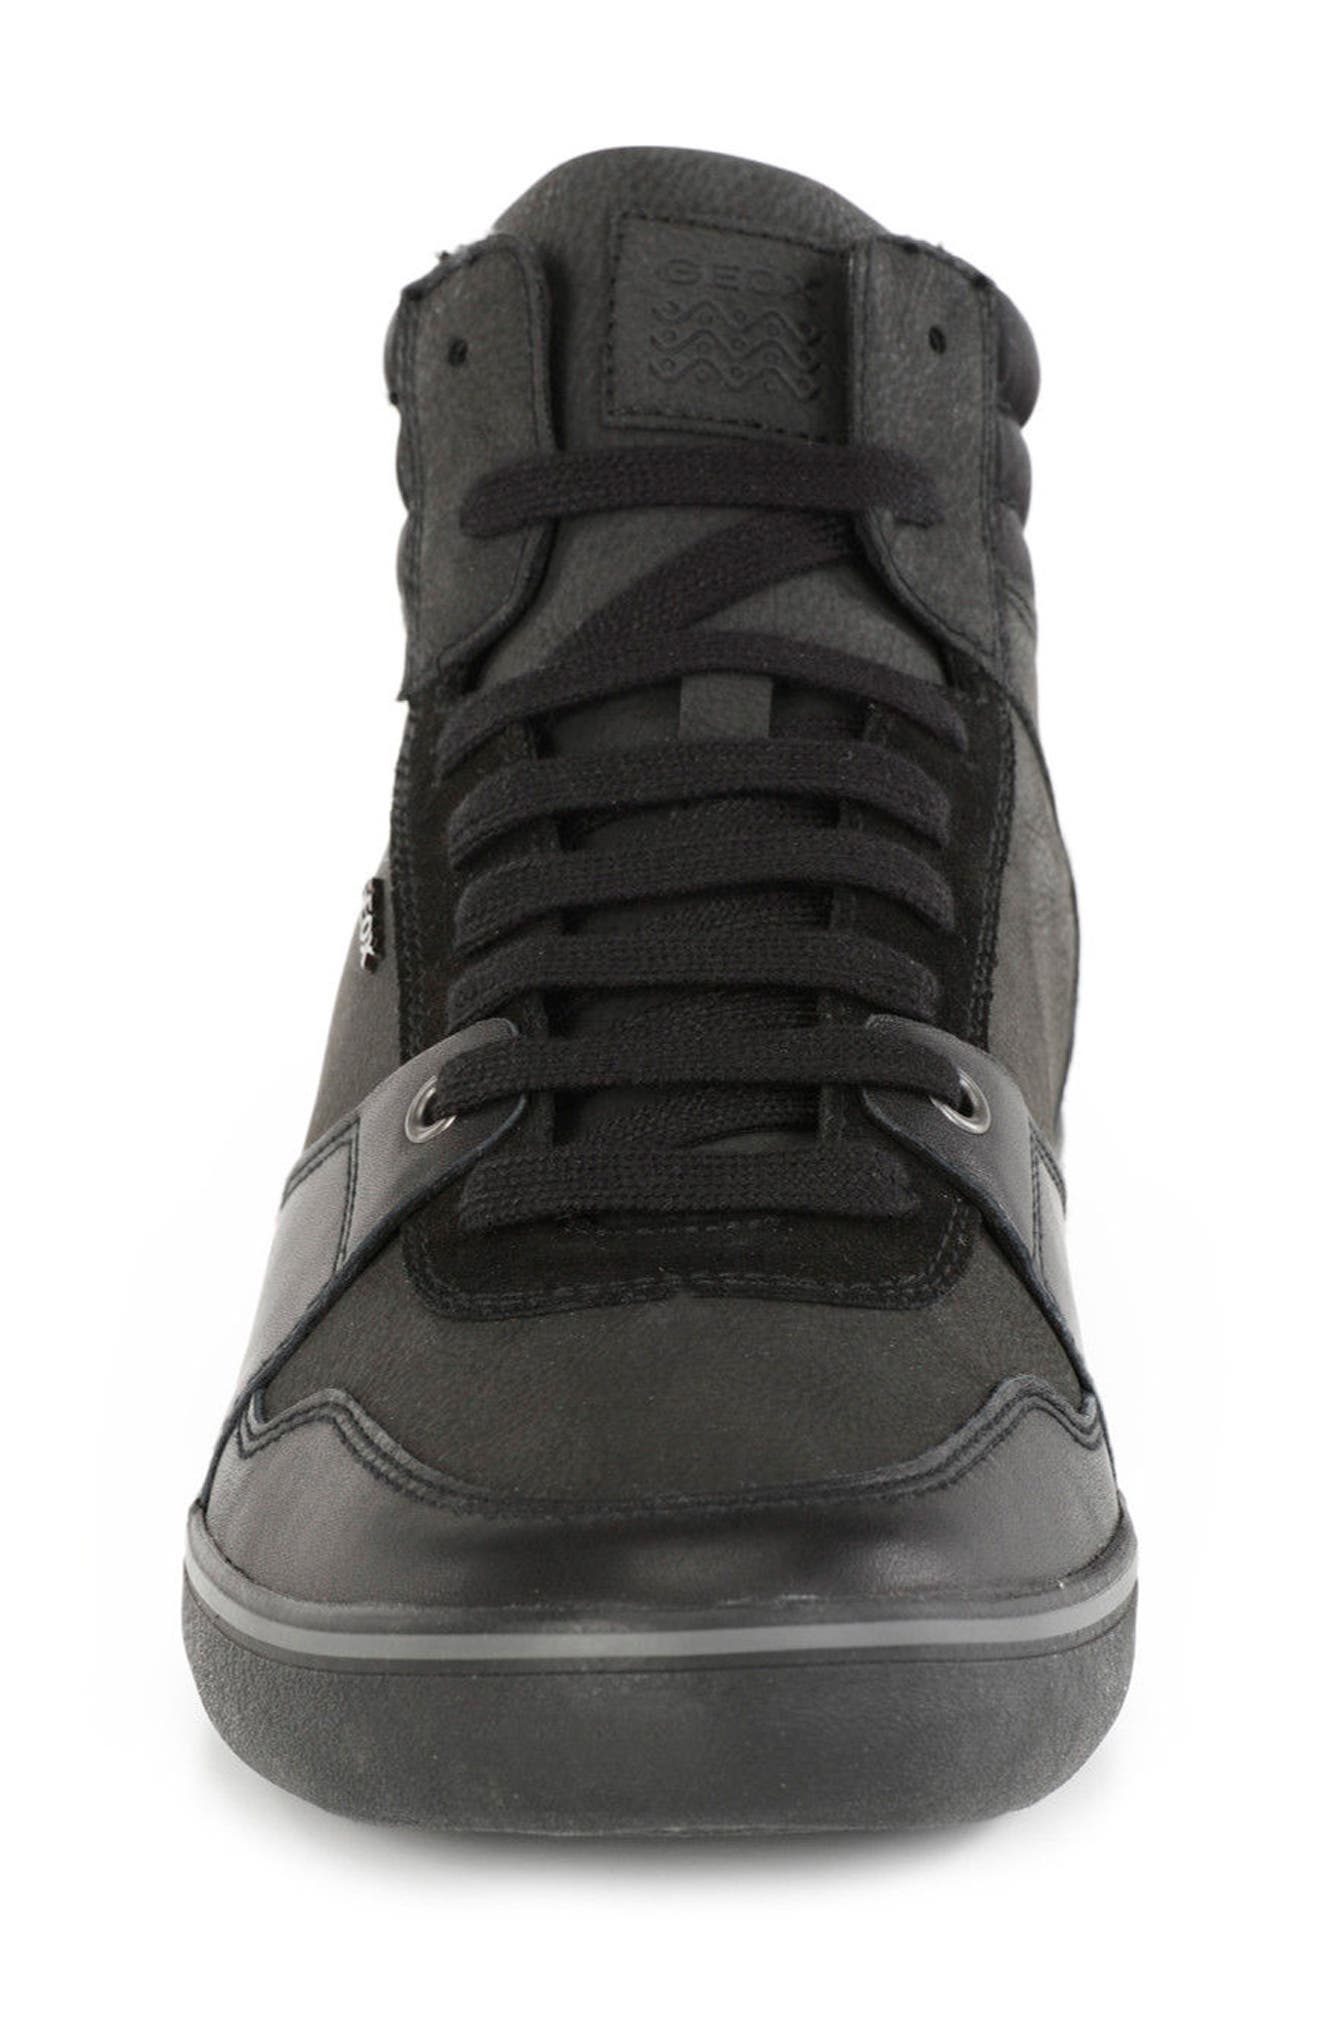 Box 31 High Top Sneaker,                             Alternate thumbnail 4, color,